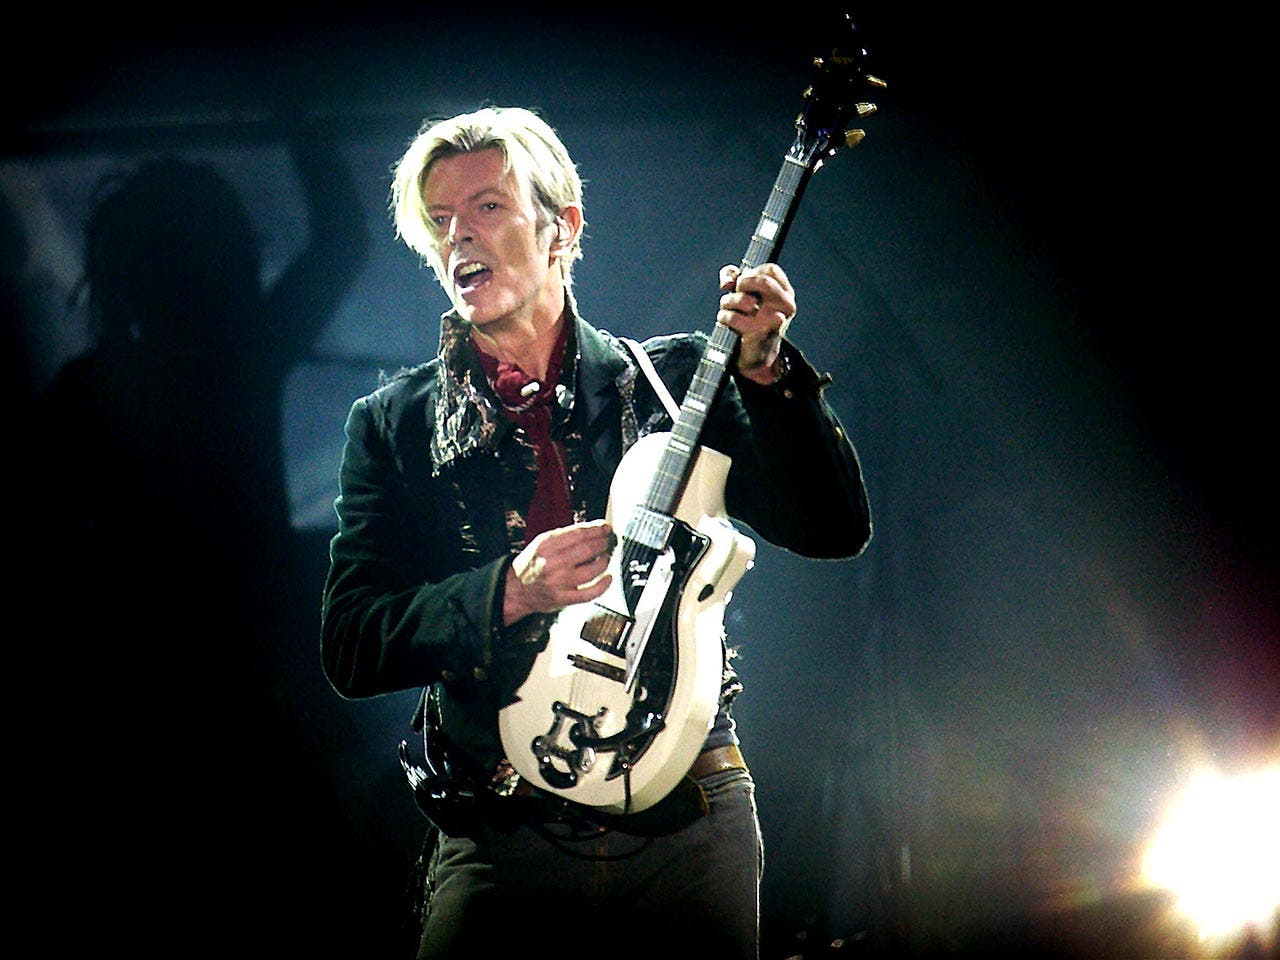 David Bowie | NILS MEILVANG/AFP/Getty Images